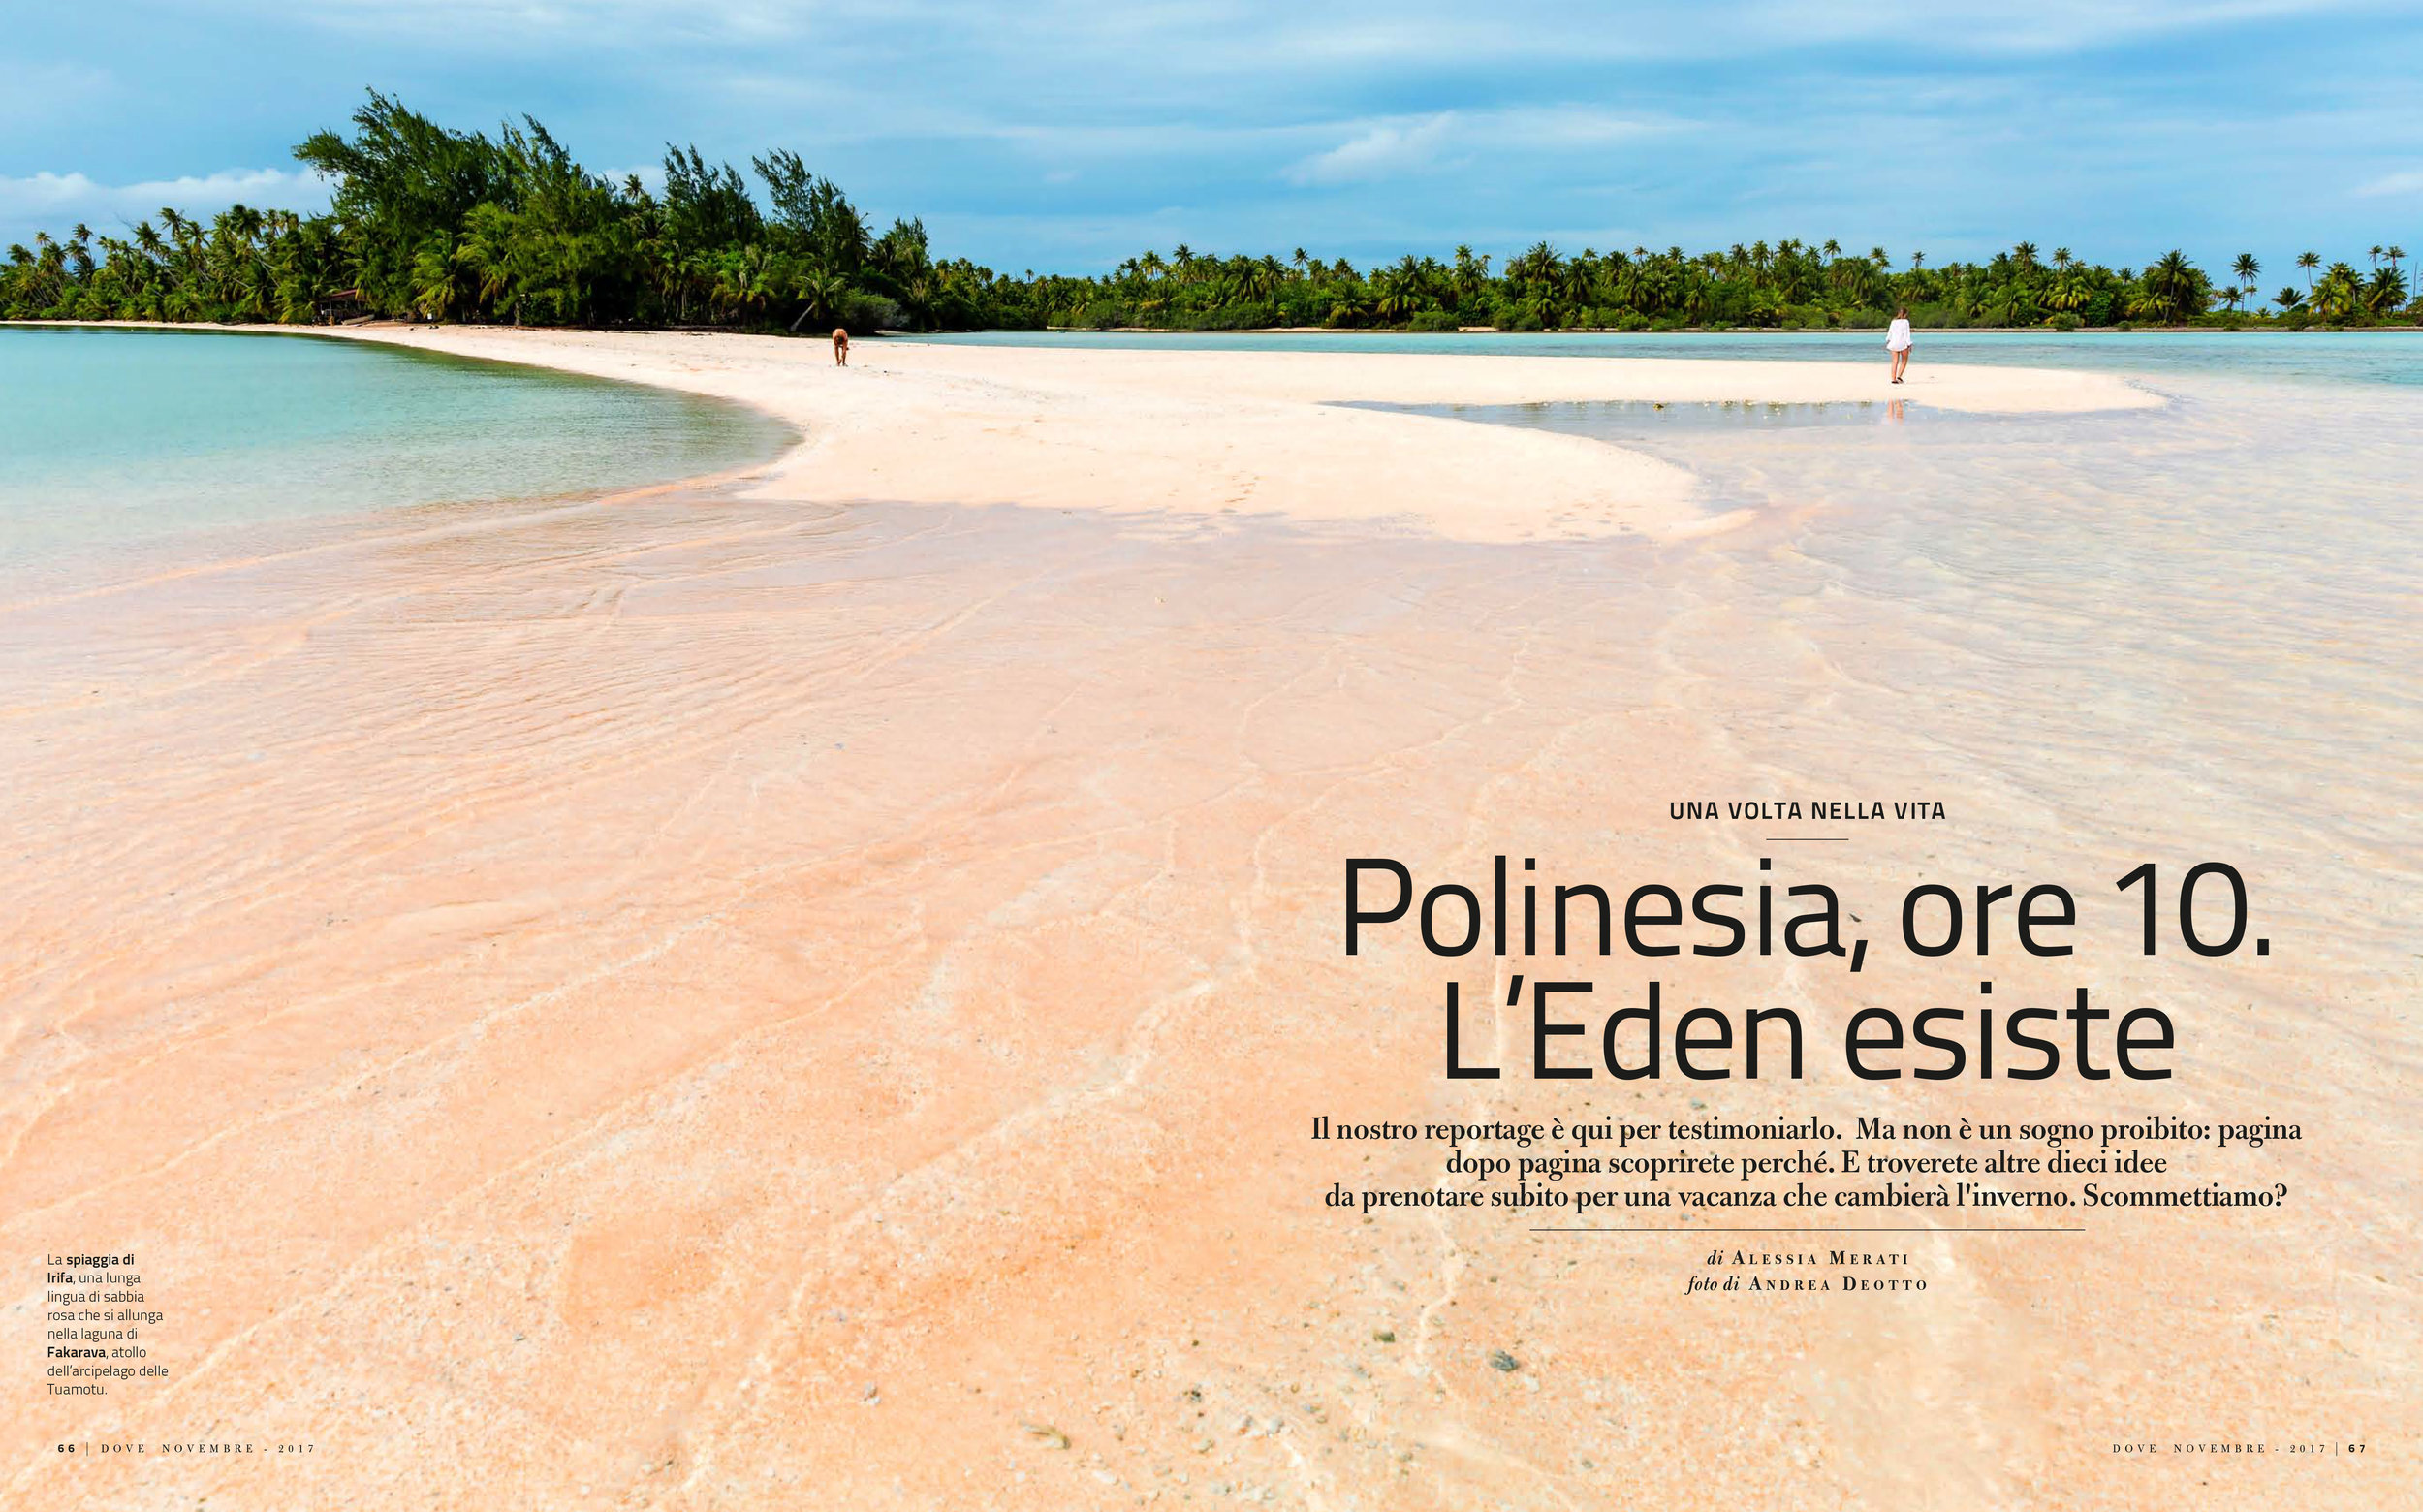 OPENING SPREAD OF THE REPORTAGE ON FRENCH POLINESIA